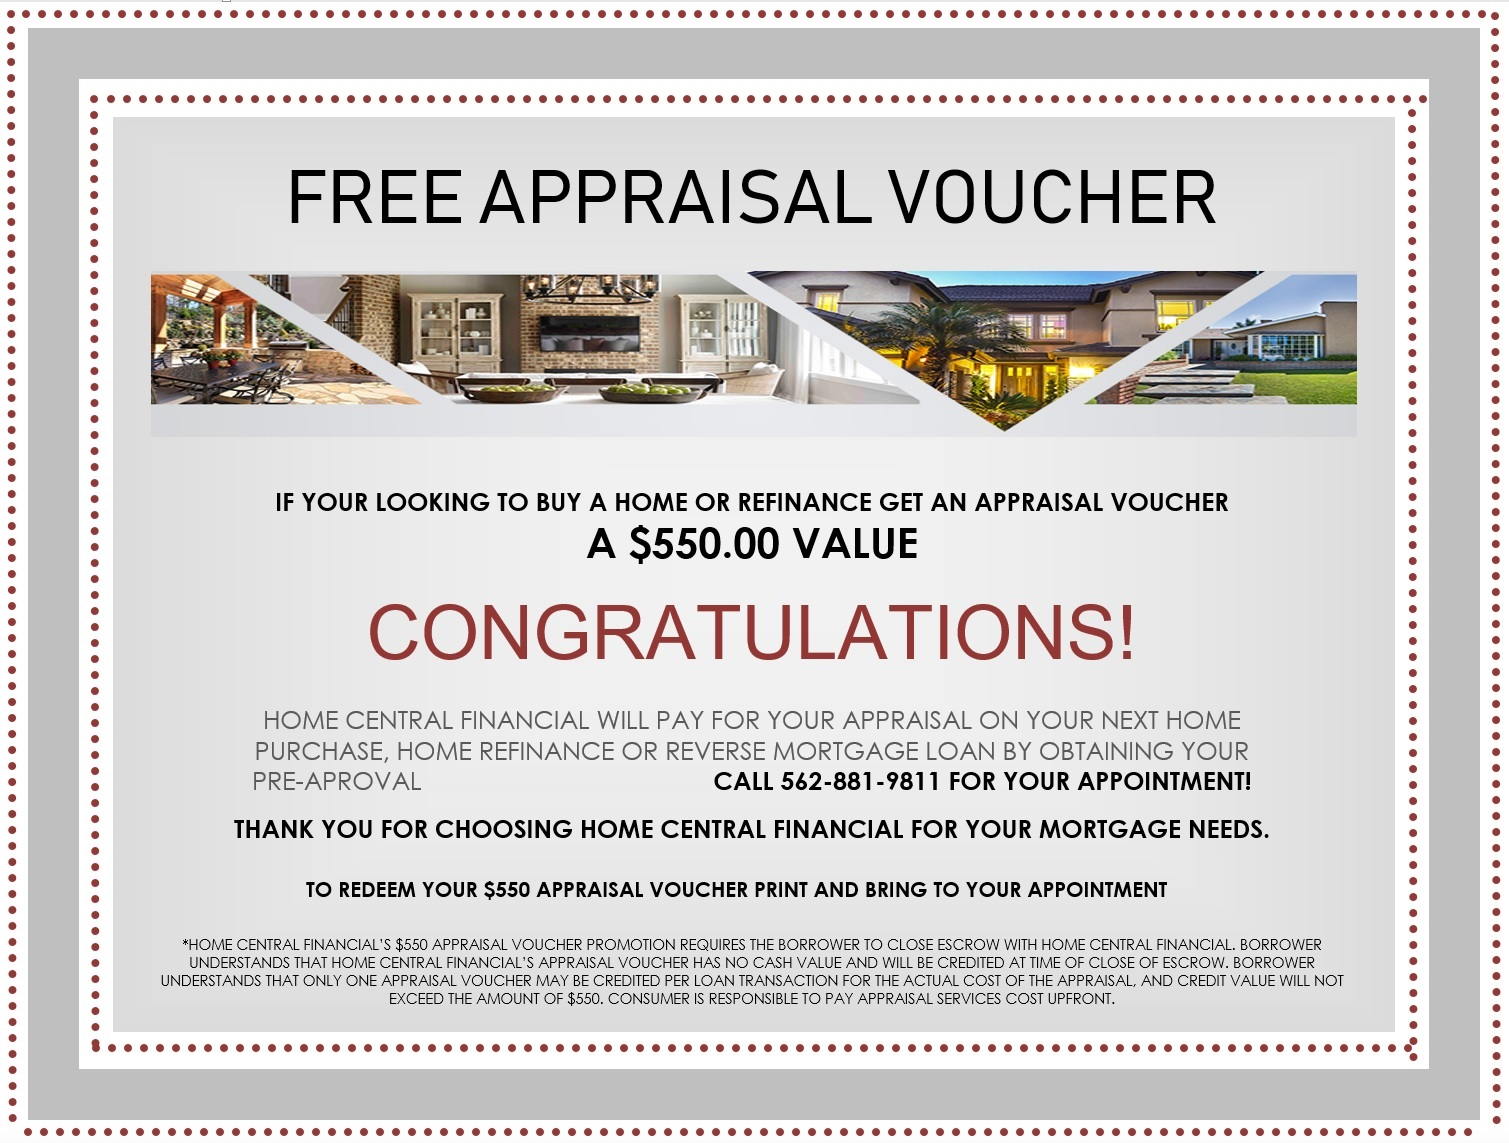 Home Purchase Or Refinance Free 550 Appraisal Voucher Home Central Financial